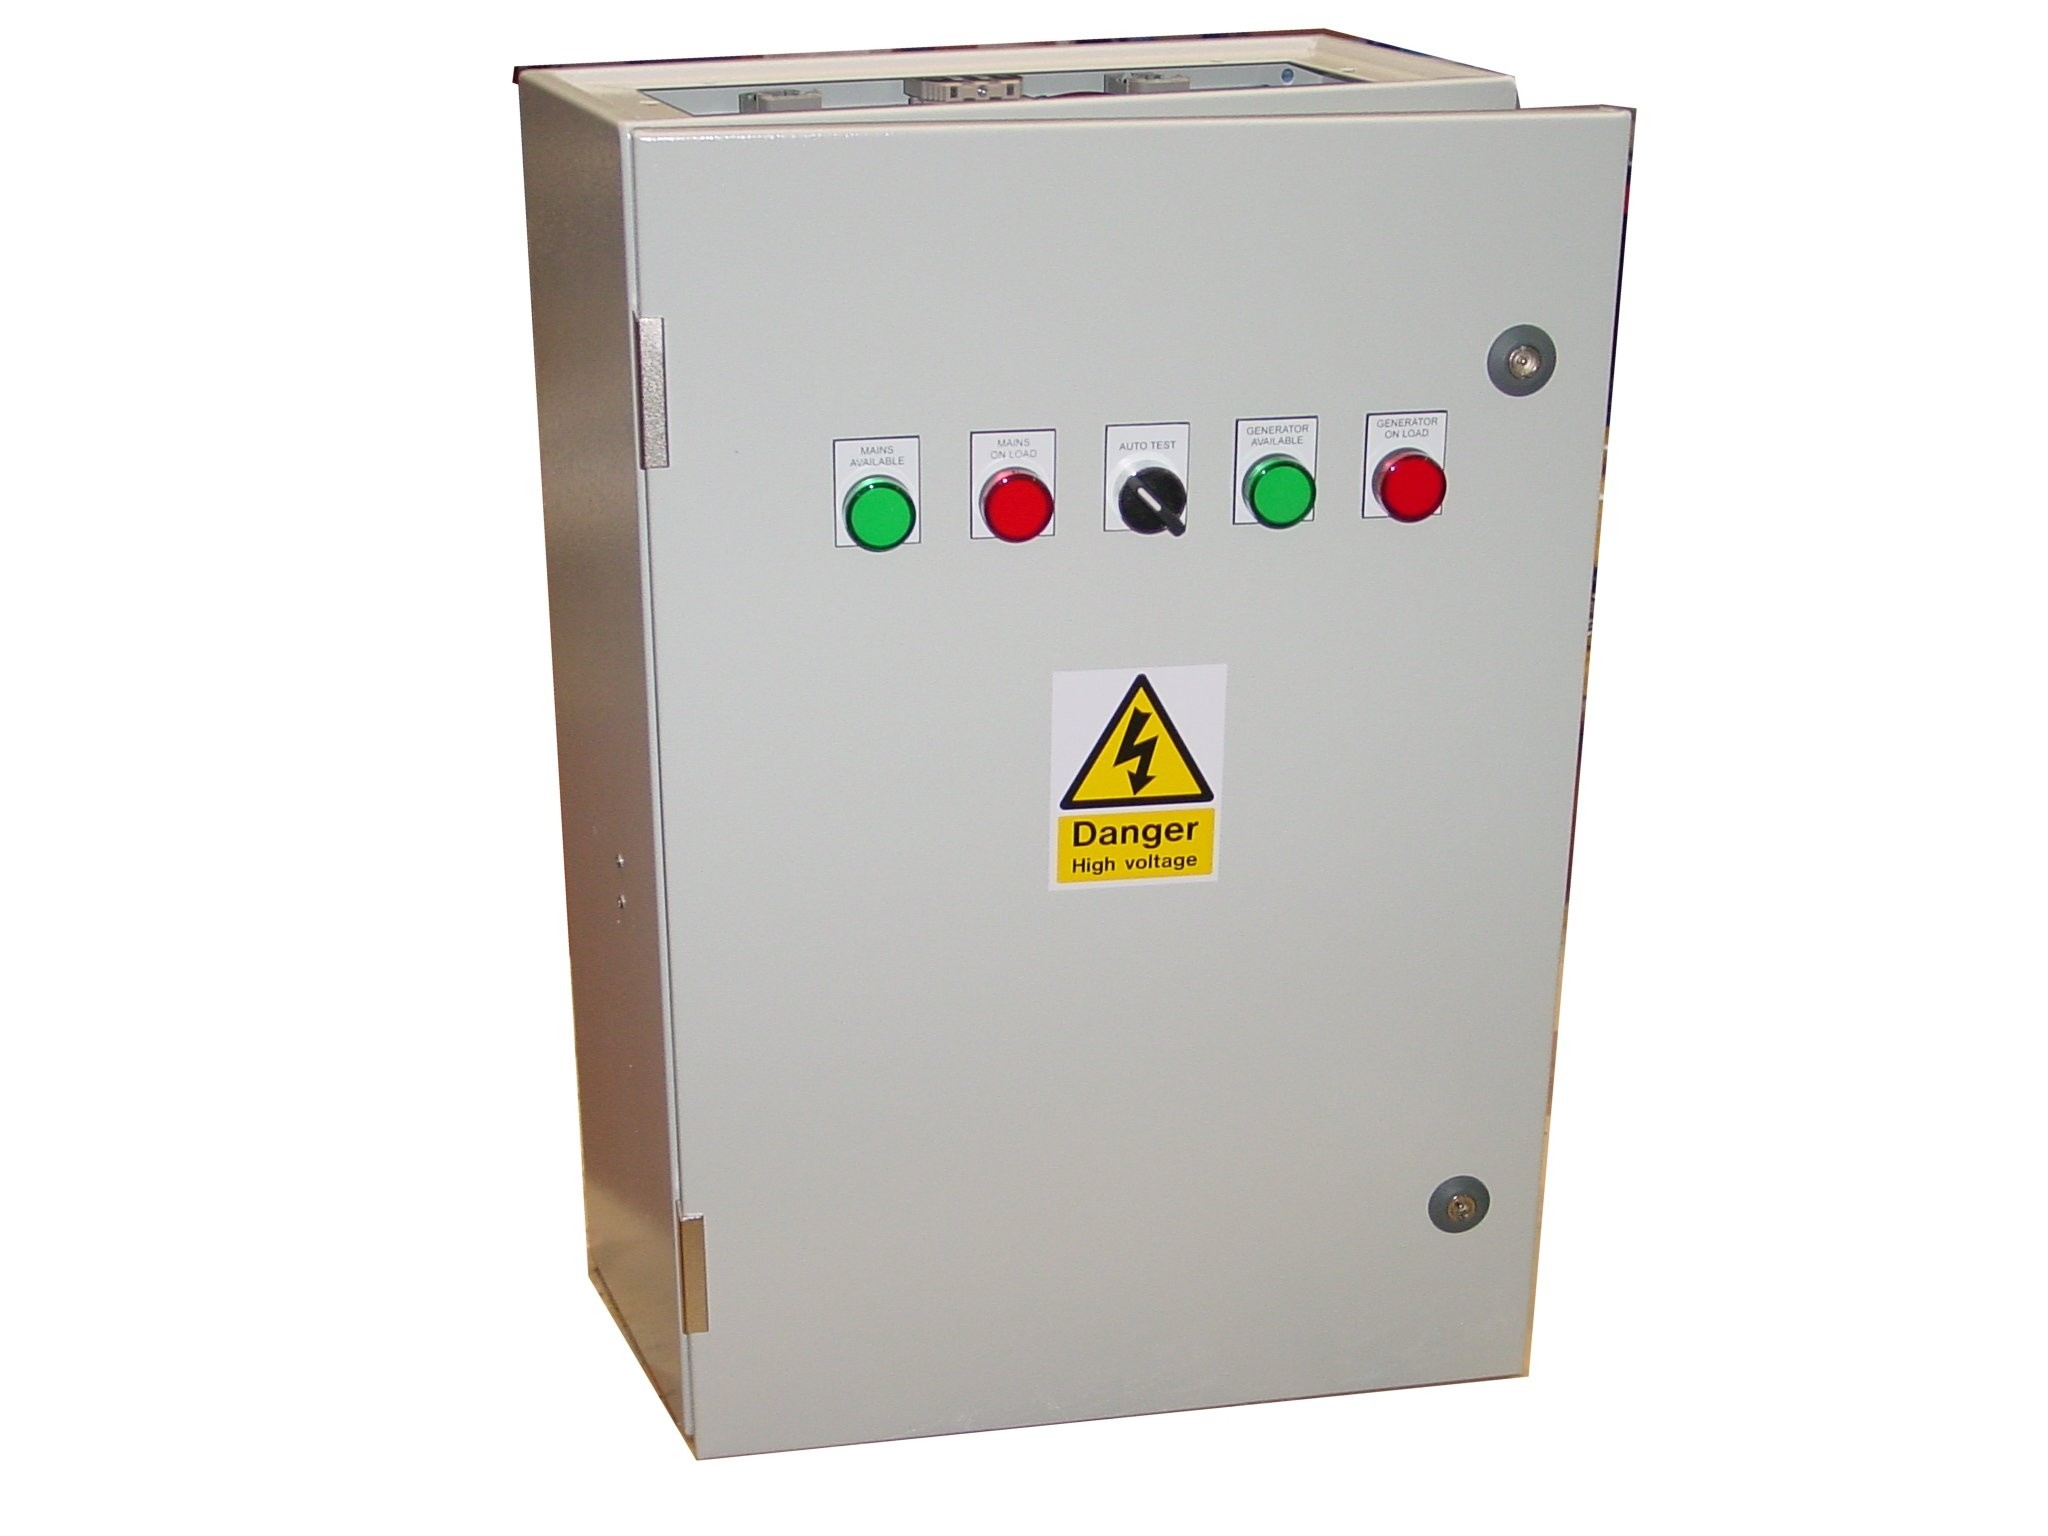 160A ATS Single Phase 230V, UVR Controlled, ABB Contactors